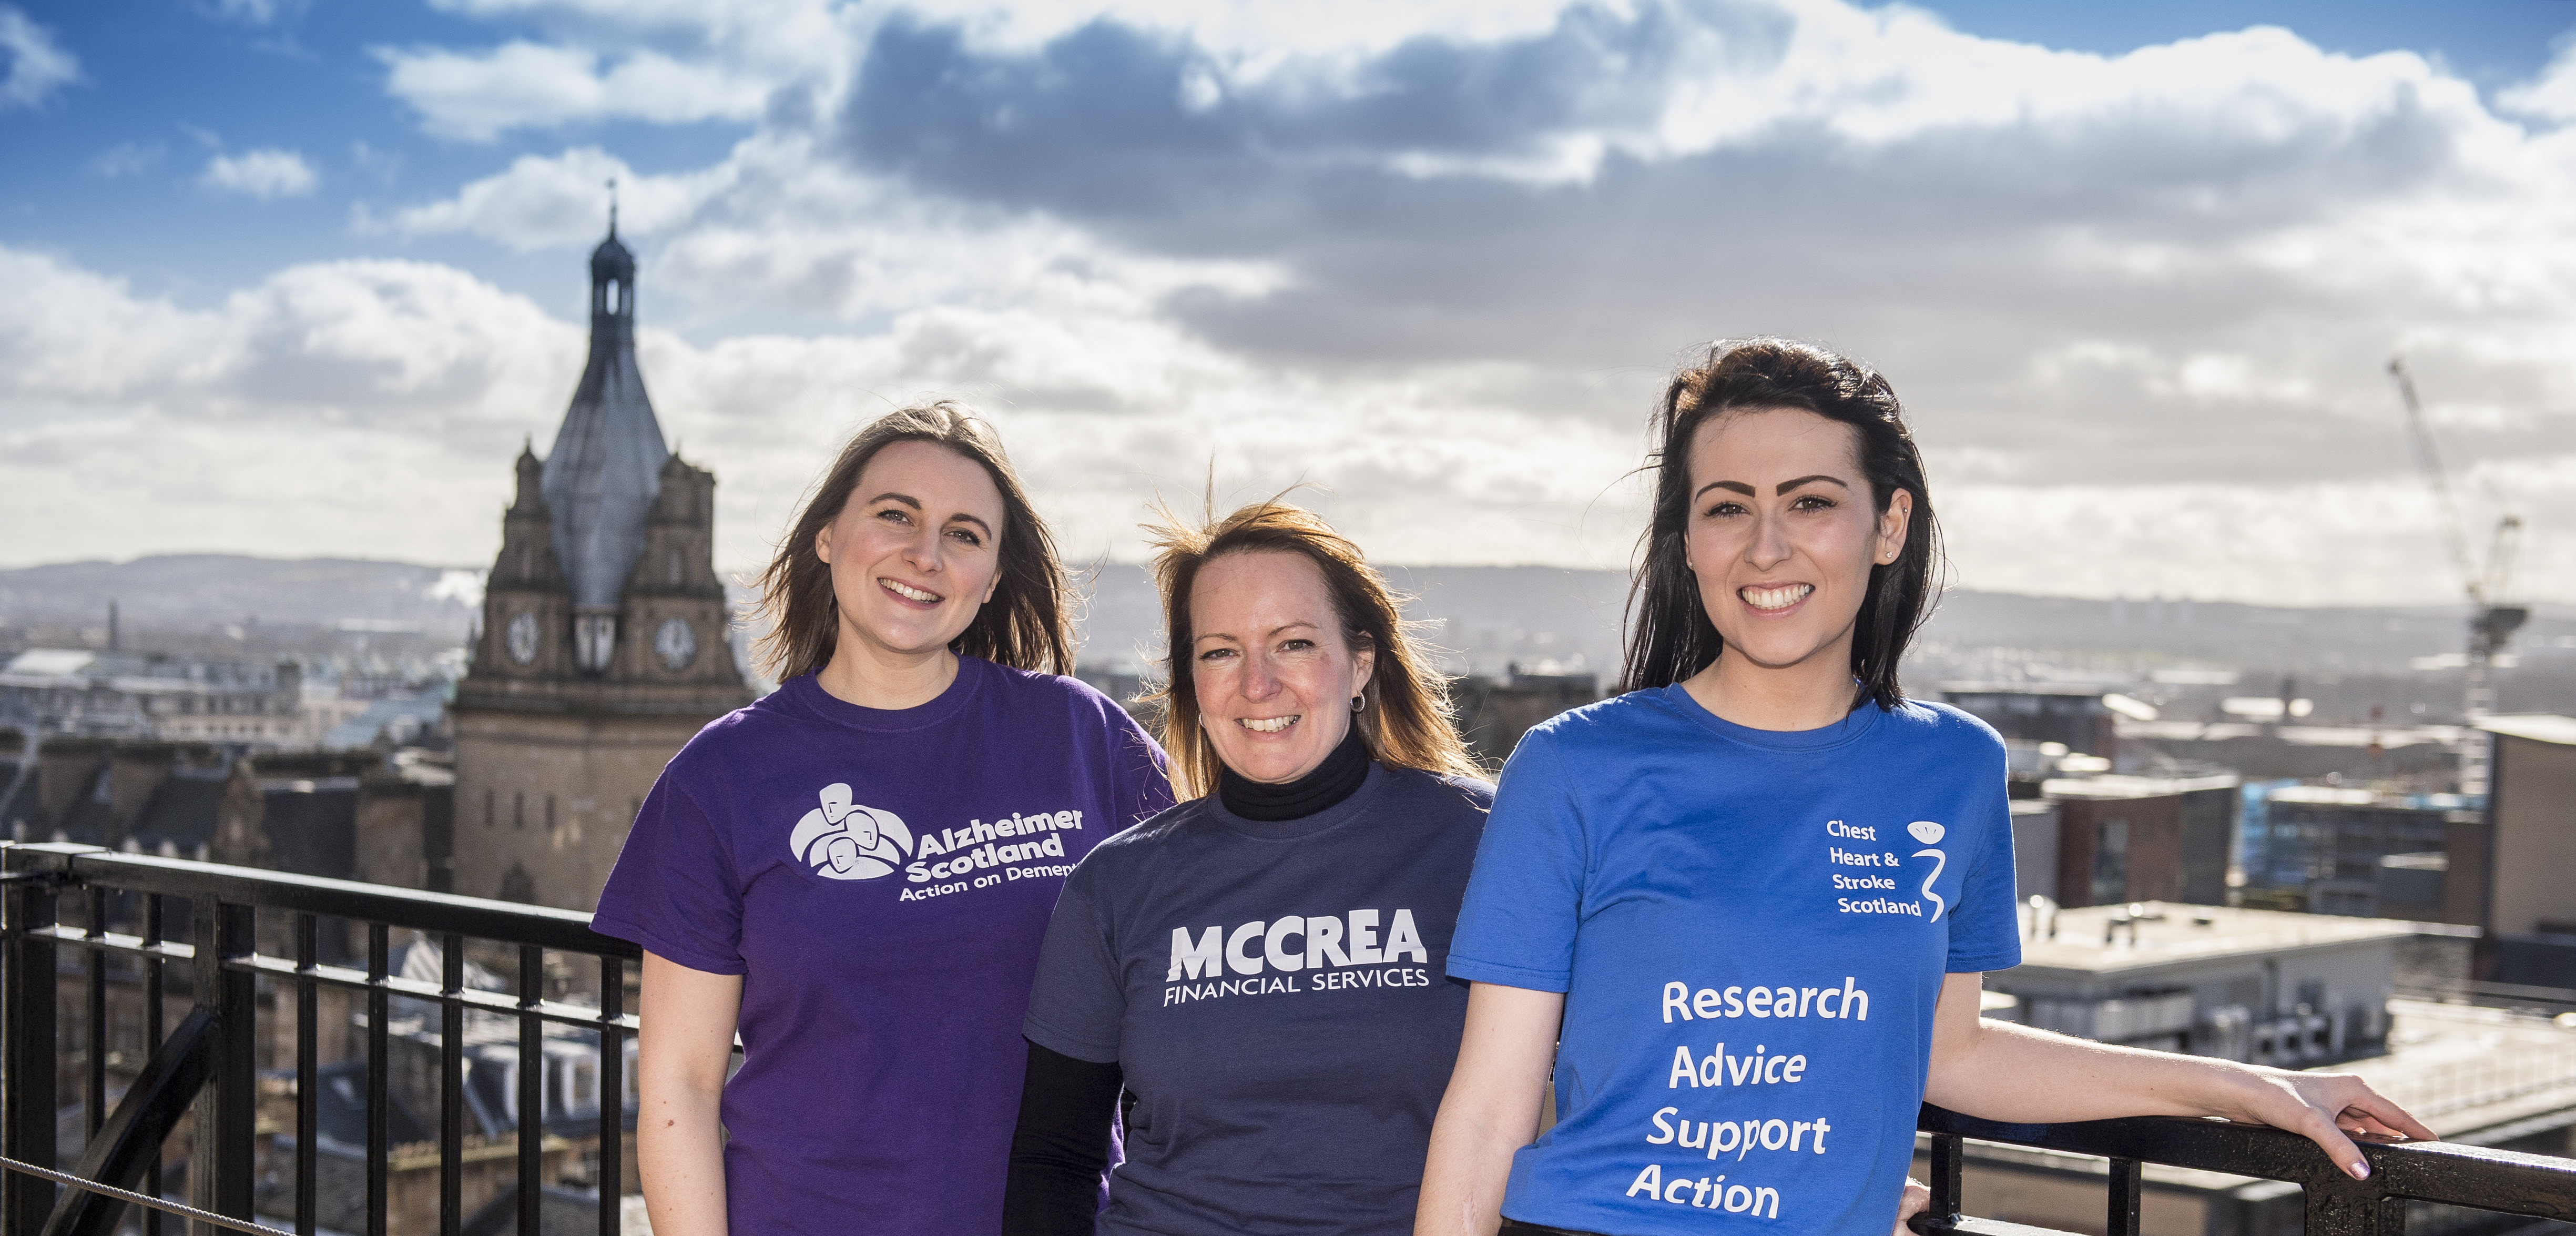 McCrea Financial Services 2017 Charities of the Year - Alzheimer Scotland and Chest Heart & Stroke Scotland